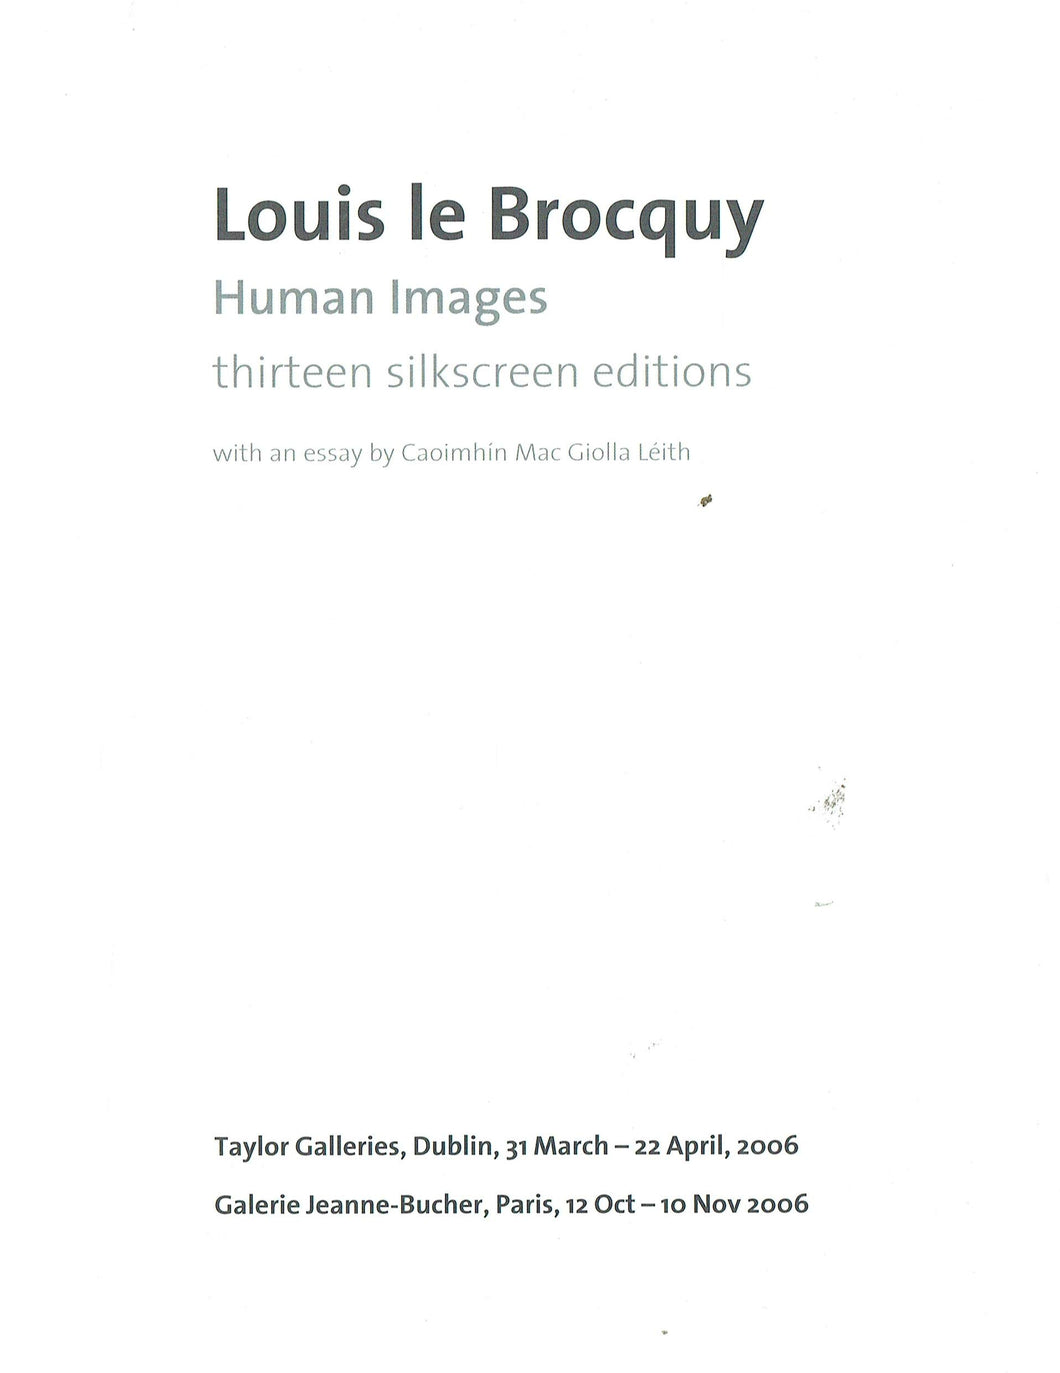 Louis le Brocquy: Human Images: thirteen silkscreen editions